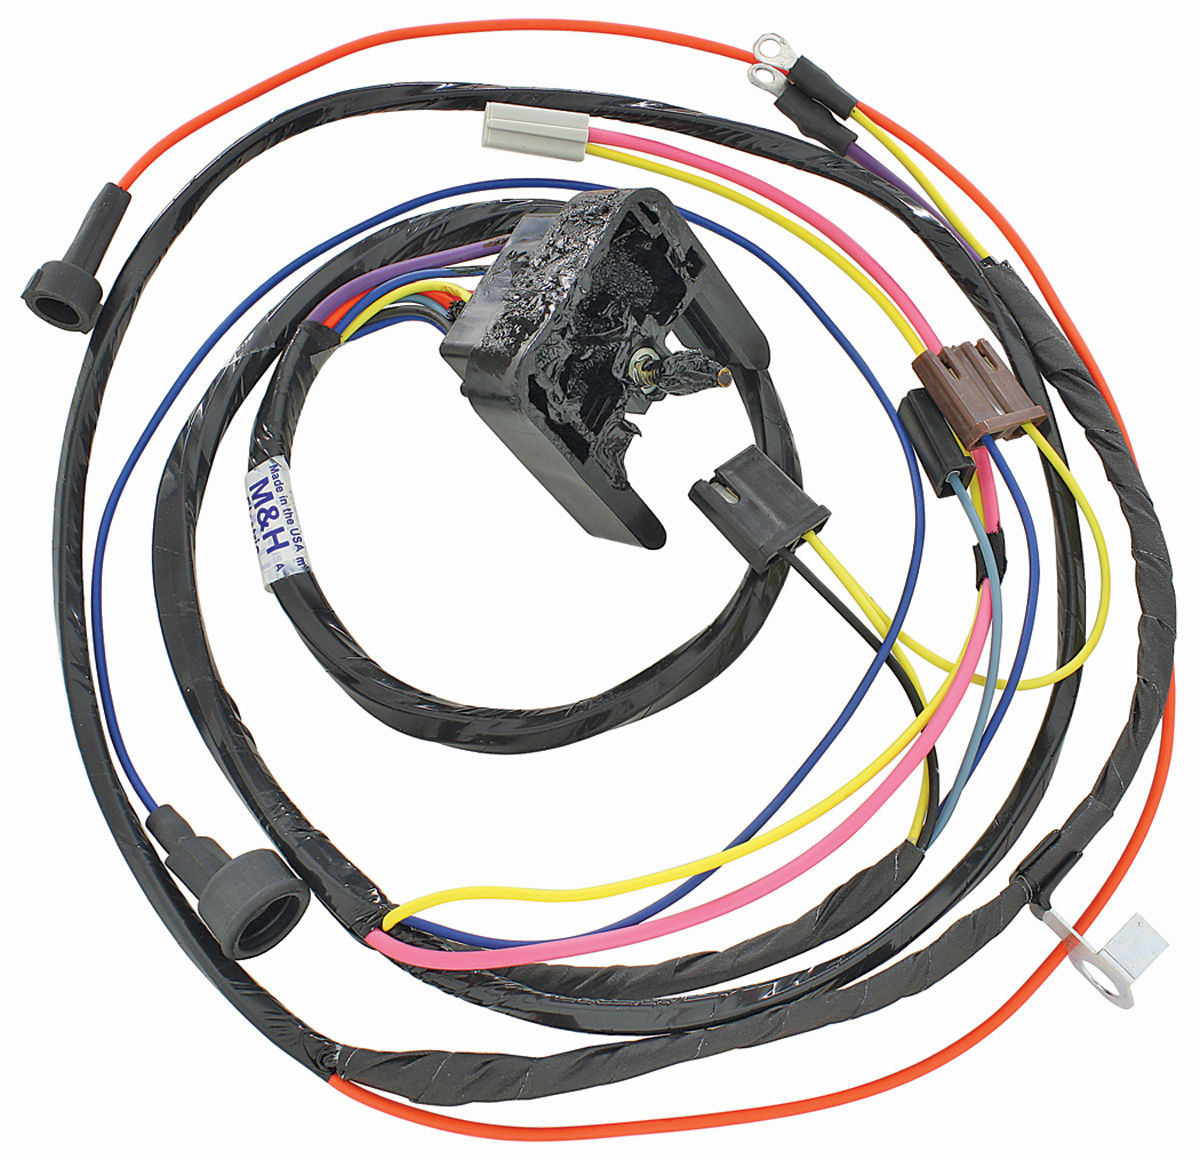 38947 lrg?v=102520130818 m&h 1968 69 chevelle engine harness 396 hei w warning lights 1972 chevelle complete wiring harness at cos-gaming.co